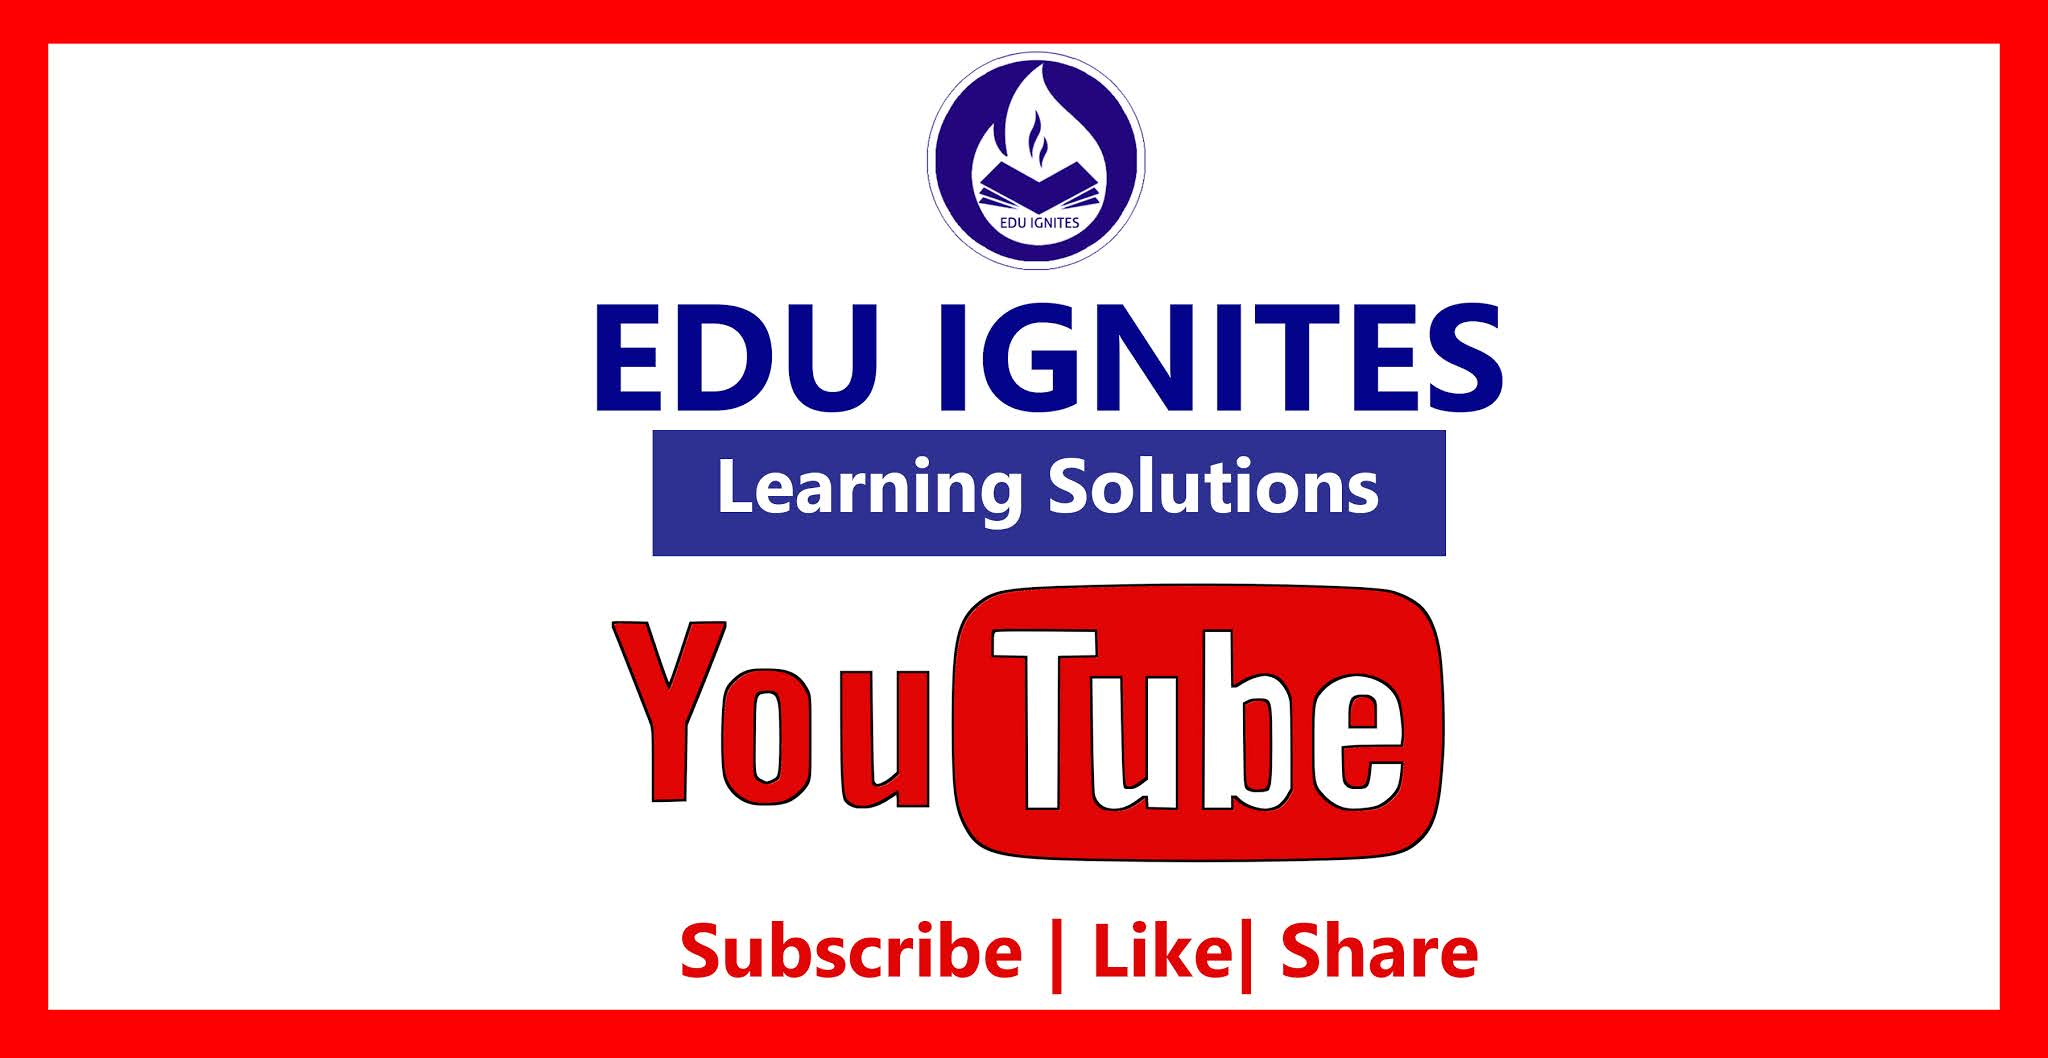 Edu Ignites You Tube Channel - Learning Solutions